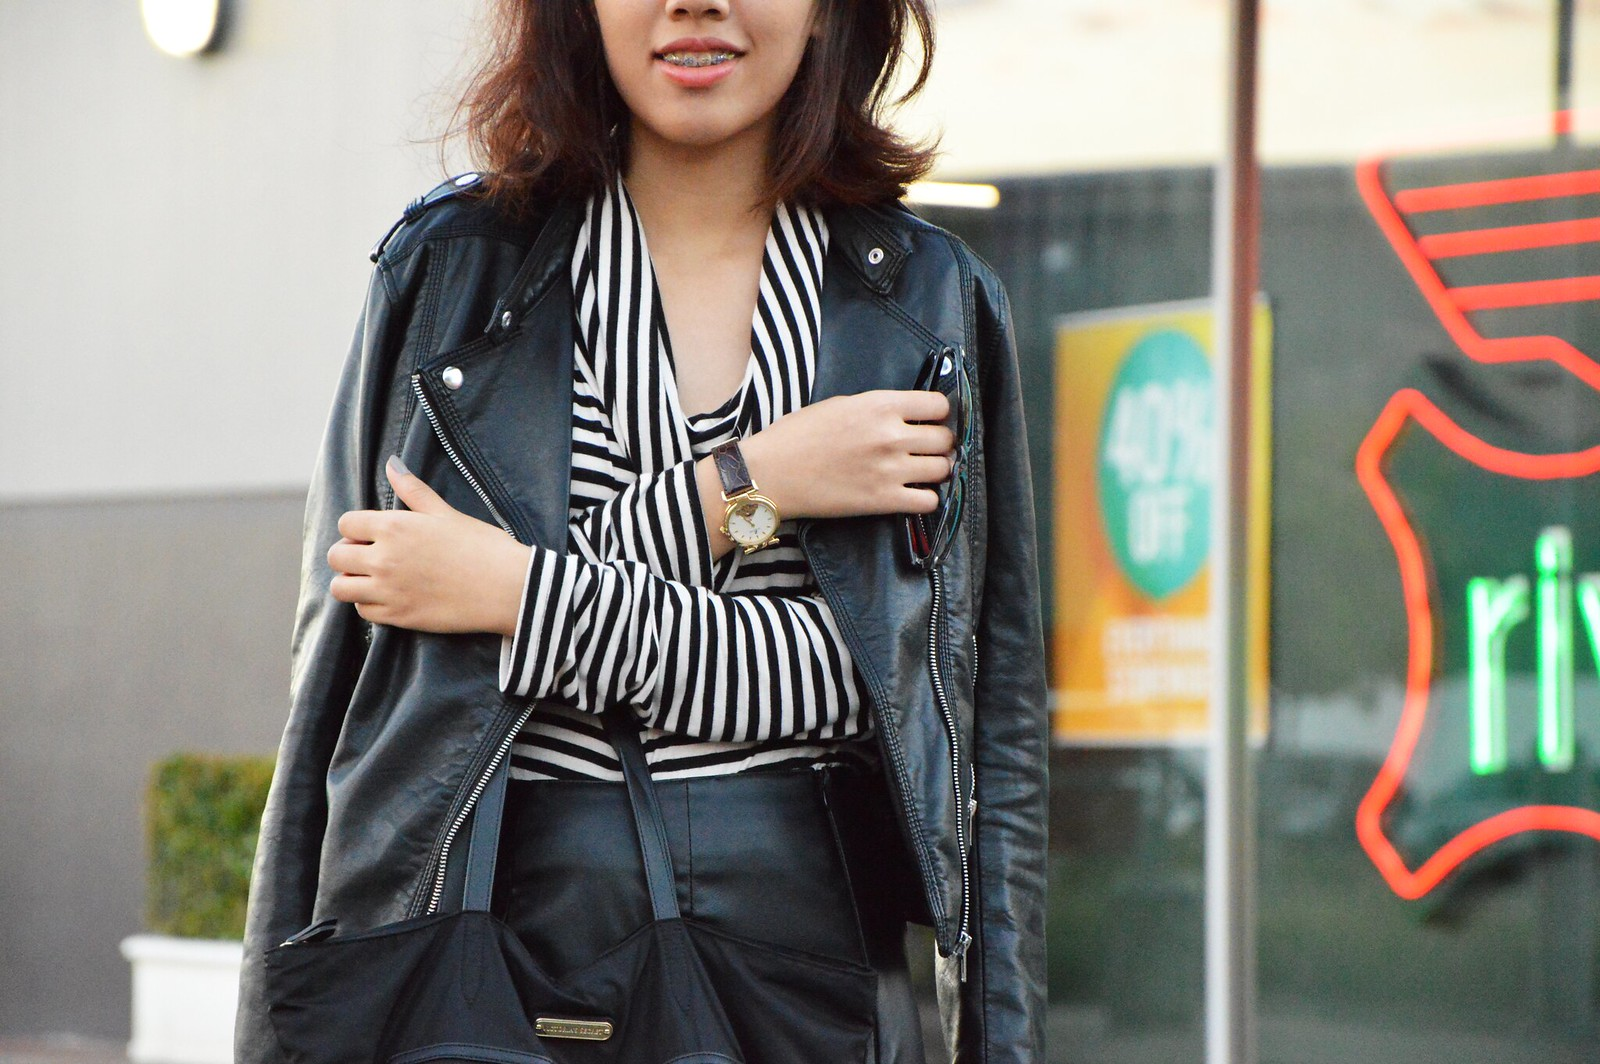 black leather jacket, leather skirt, striped turtleneck sweater